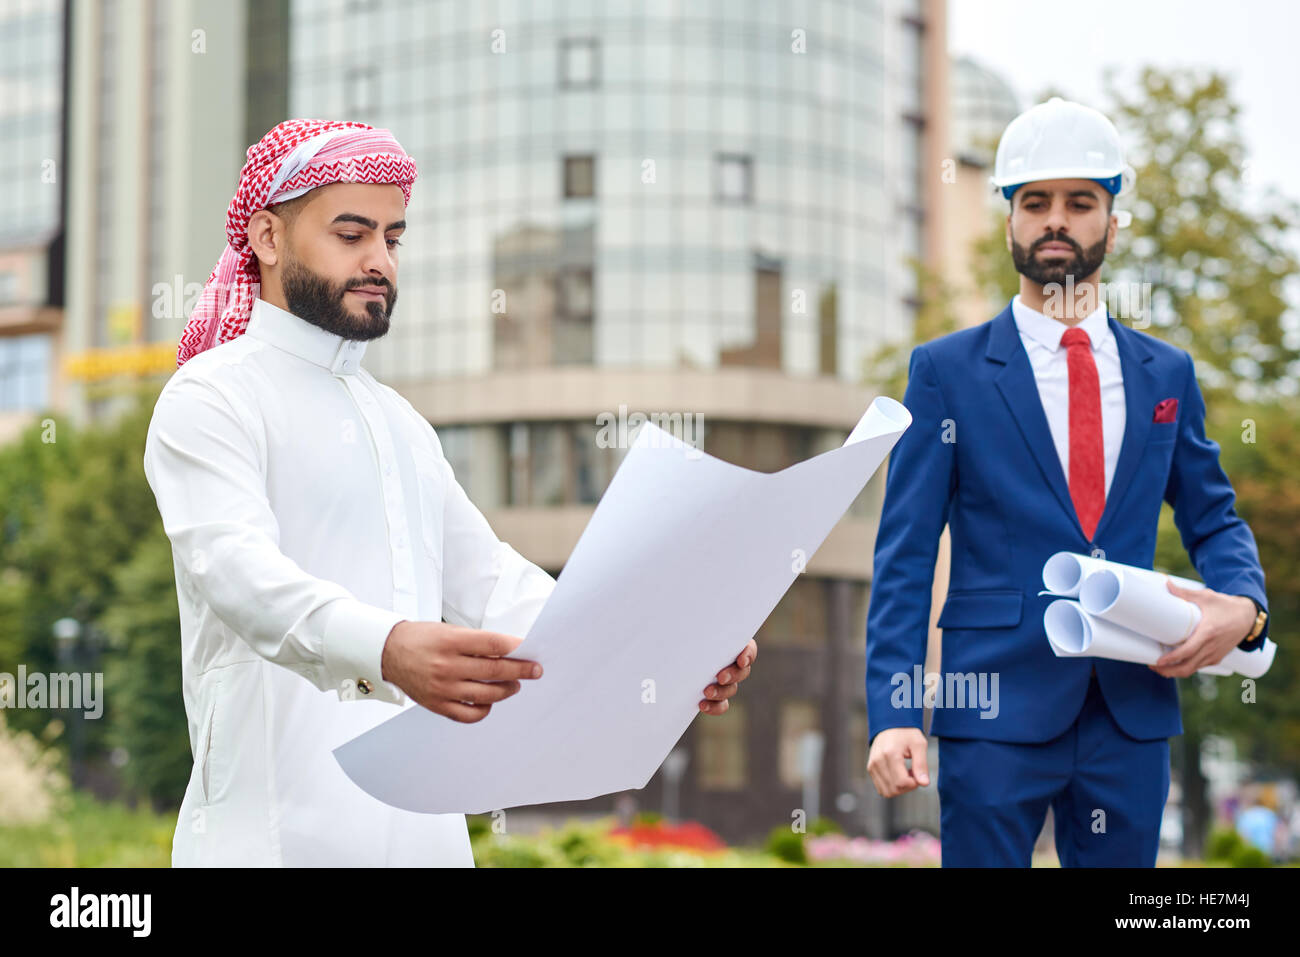 Almost all work is done. Shot of an Arab businessman examining architectural development plan - Stock Image